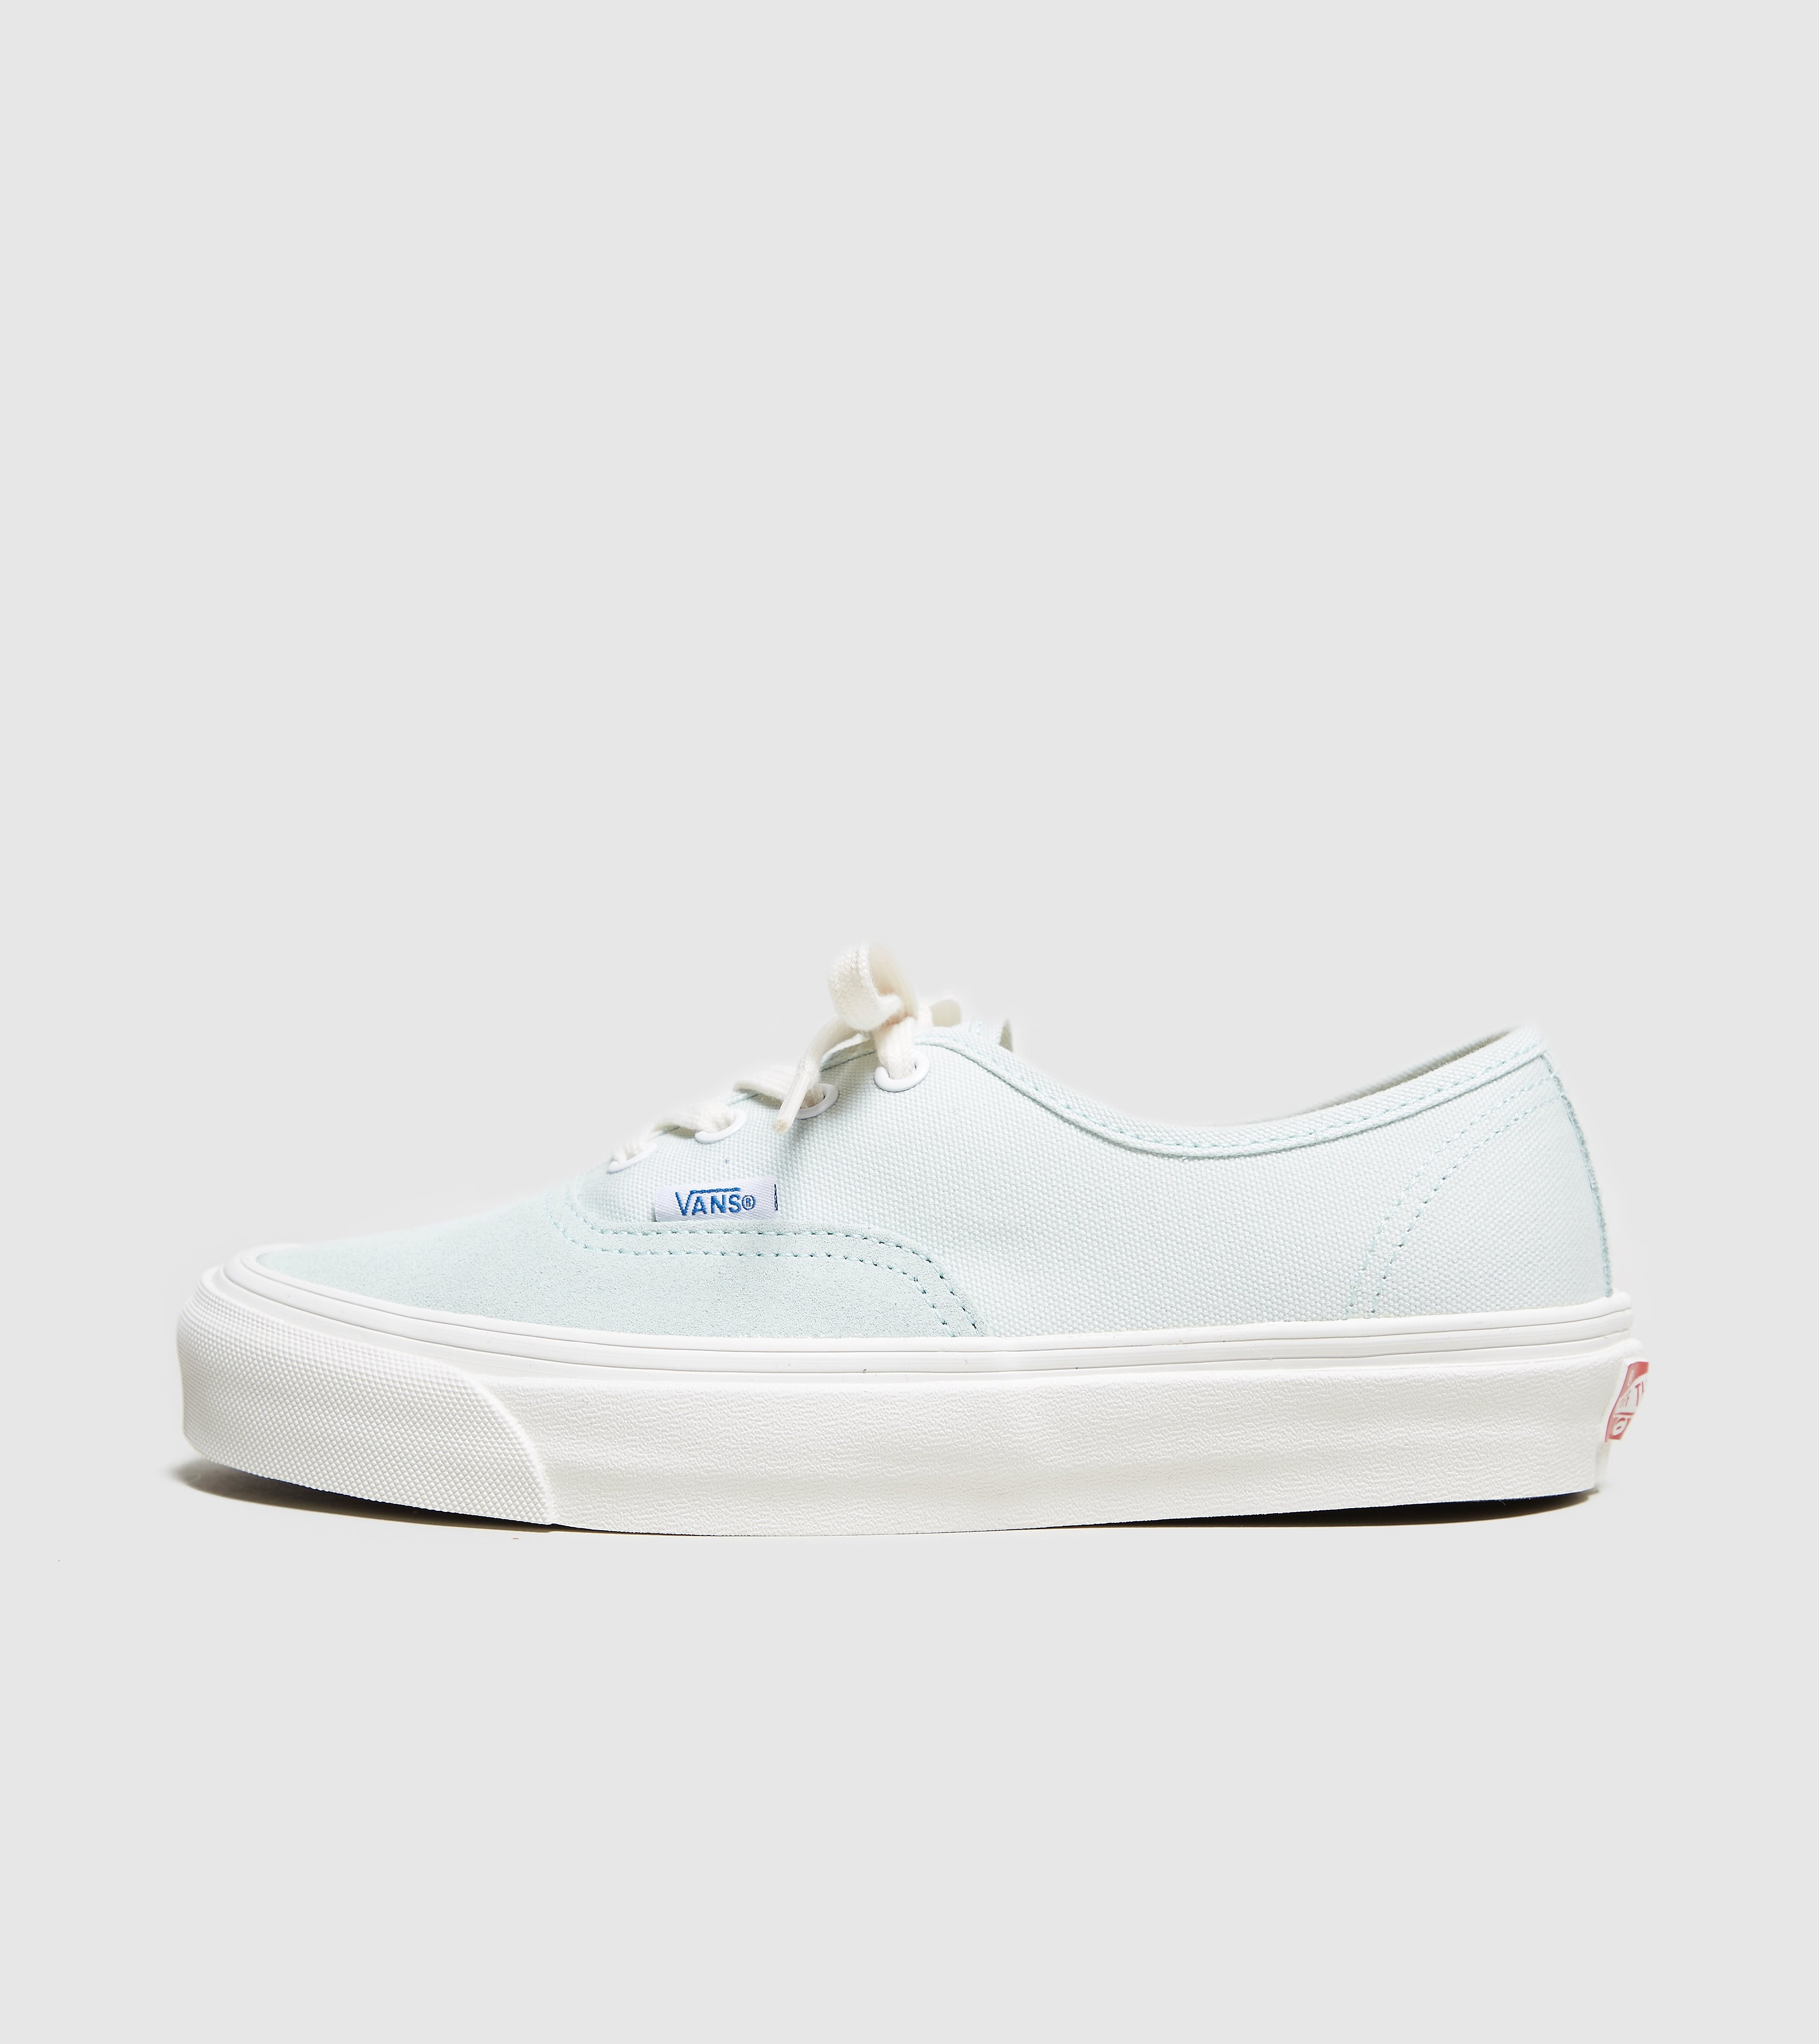 Vans OG Authentic LX Women's